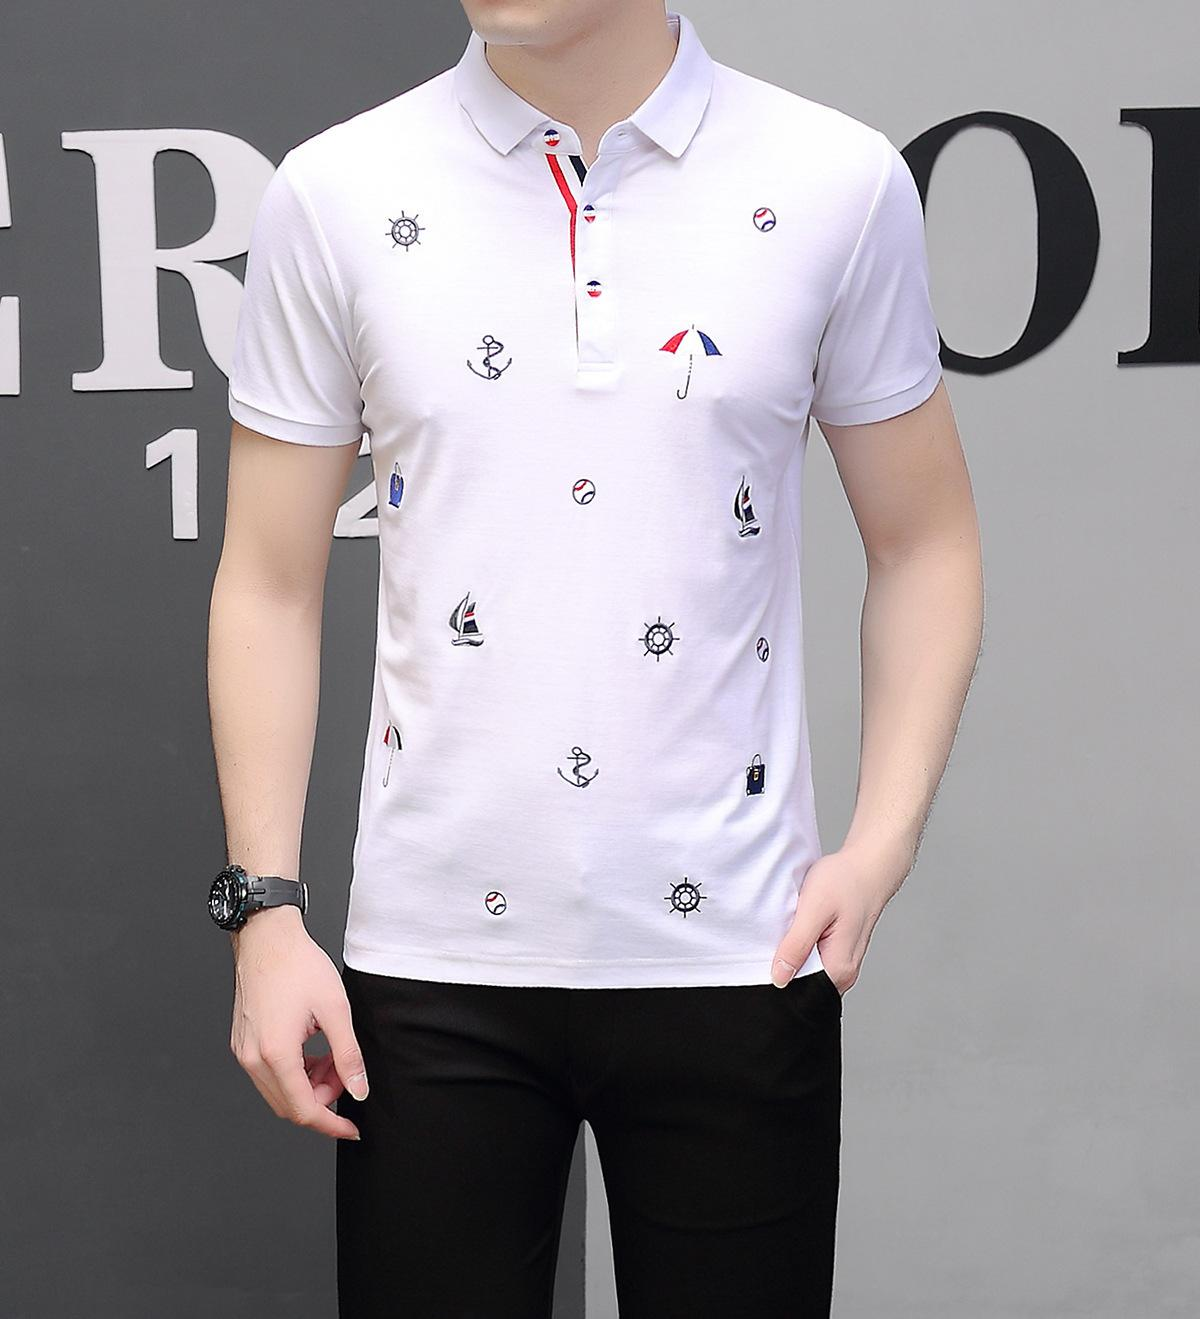 3208ad088 Man Short Sleeve T T Shirt Summer New Pure Cotton Embroidery T T Shirt T  Shirt T Shirt Shop Design Crazy T Shirts Online From Yunhui10, $36.55|  DHgate.Com